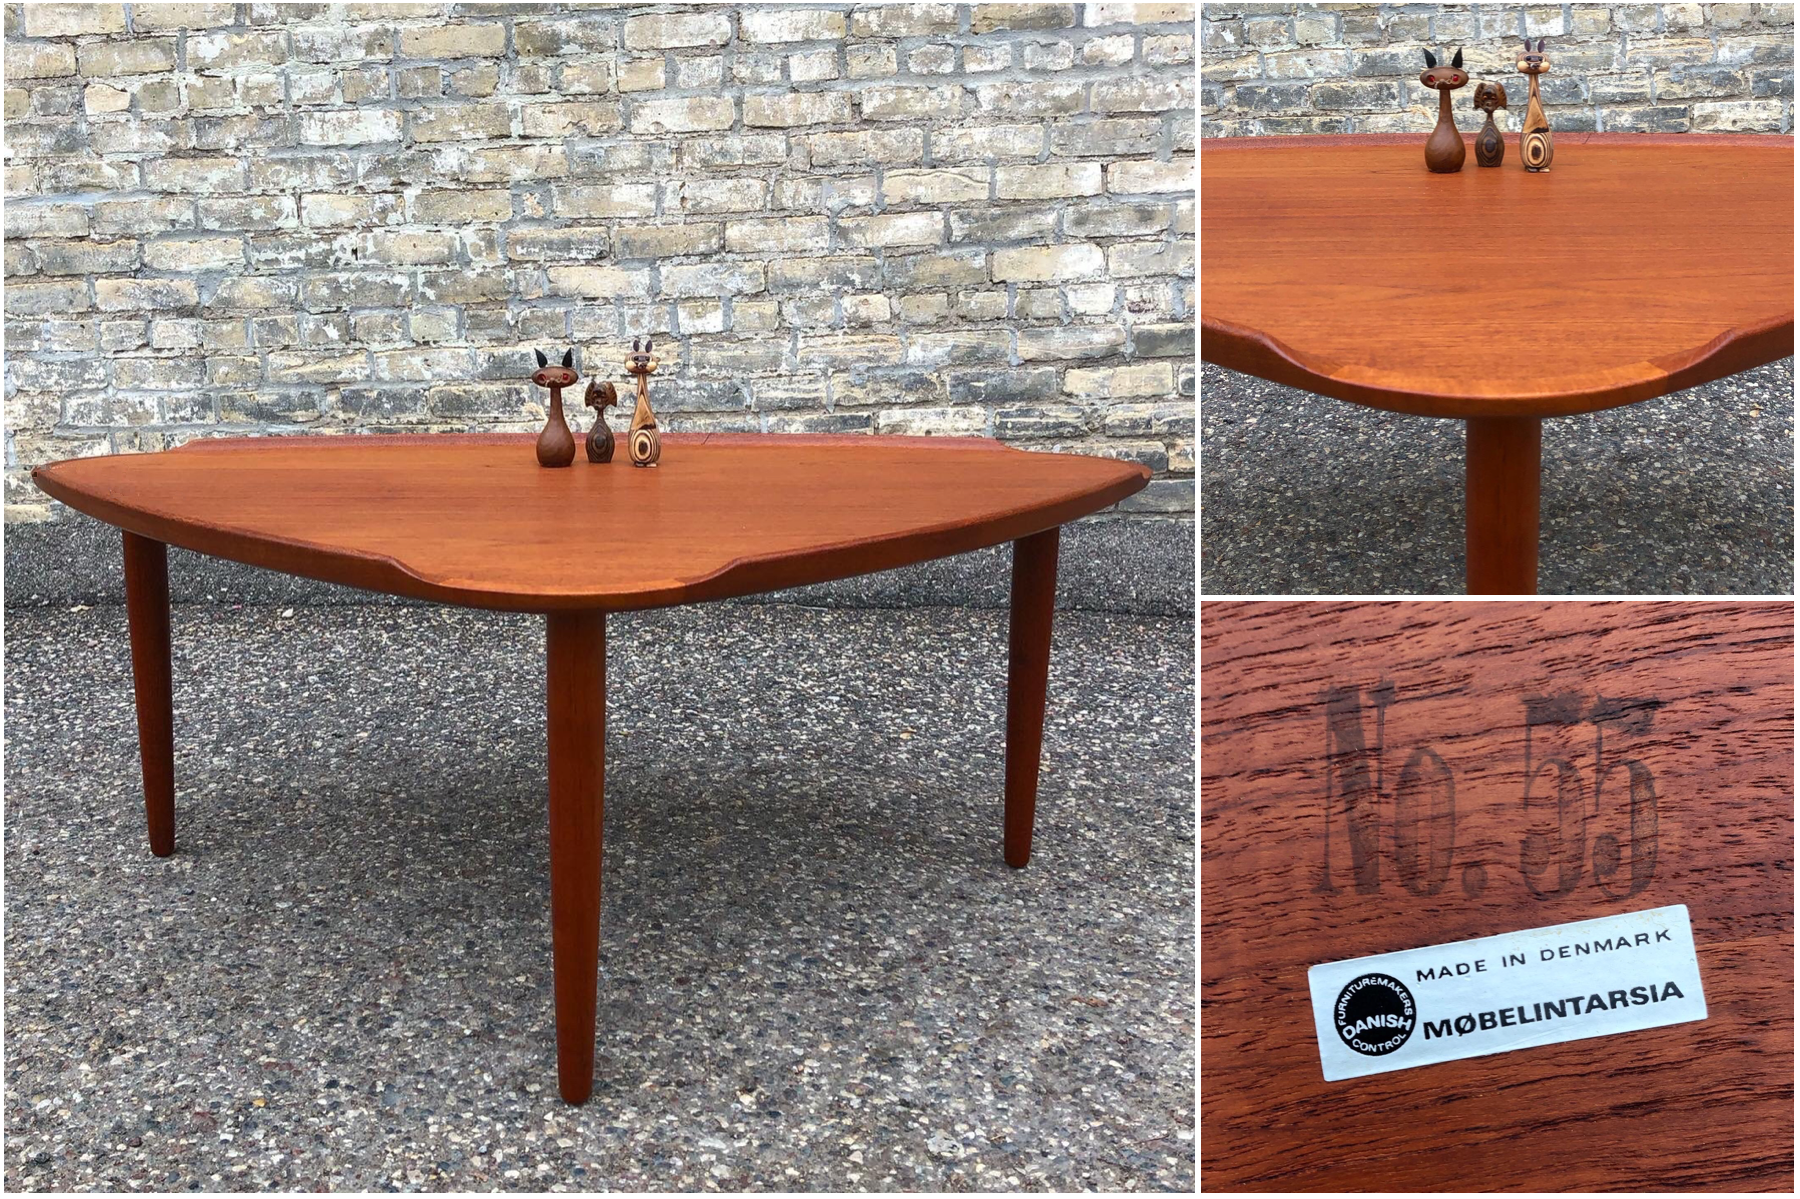 Teak coffee table - designed by Aakjaer Jorgensen and made in Denmark by Mobelintarsia